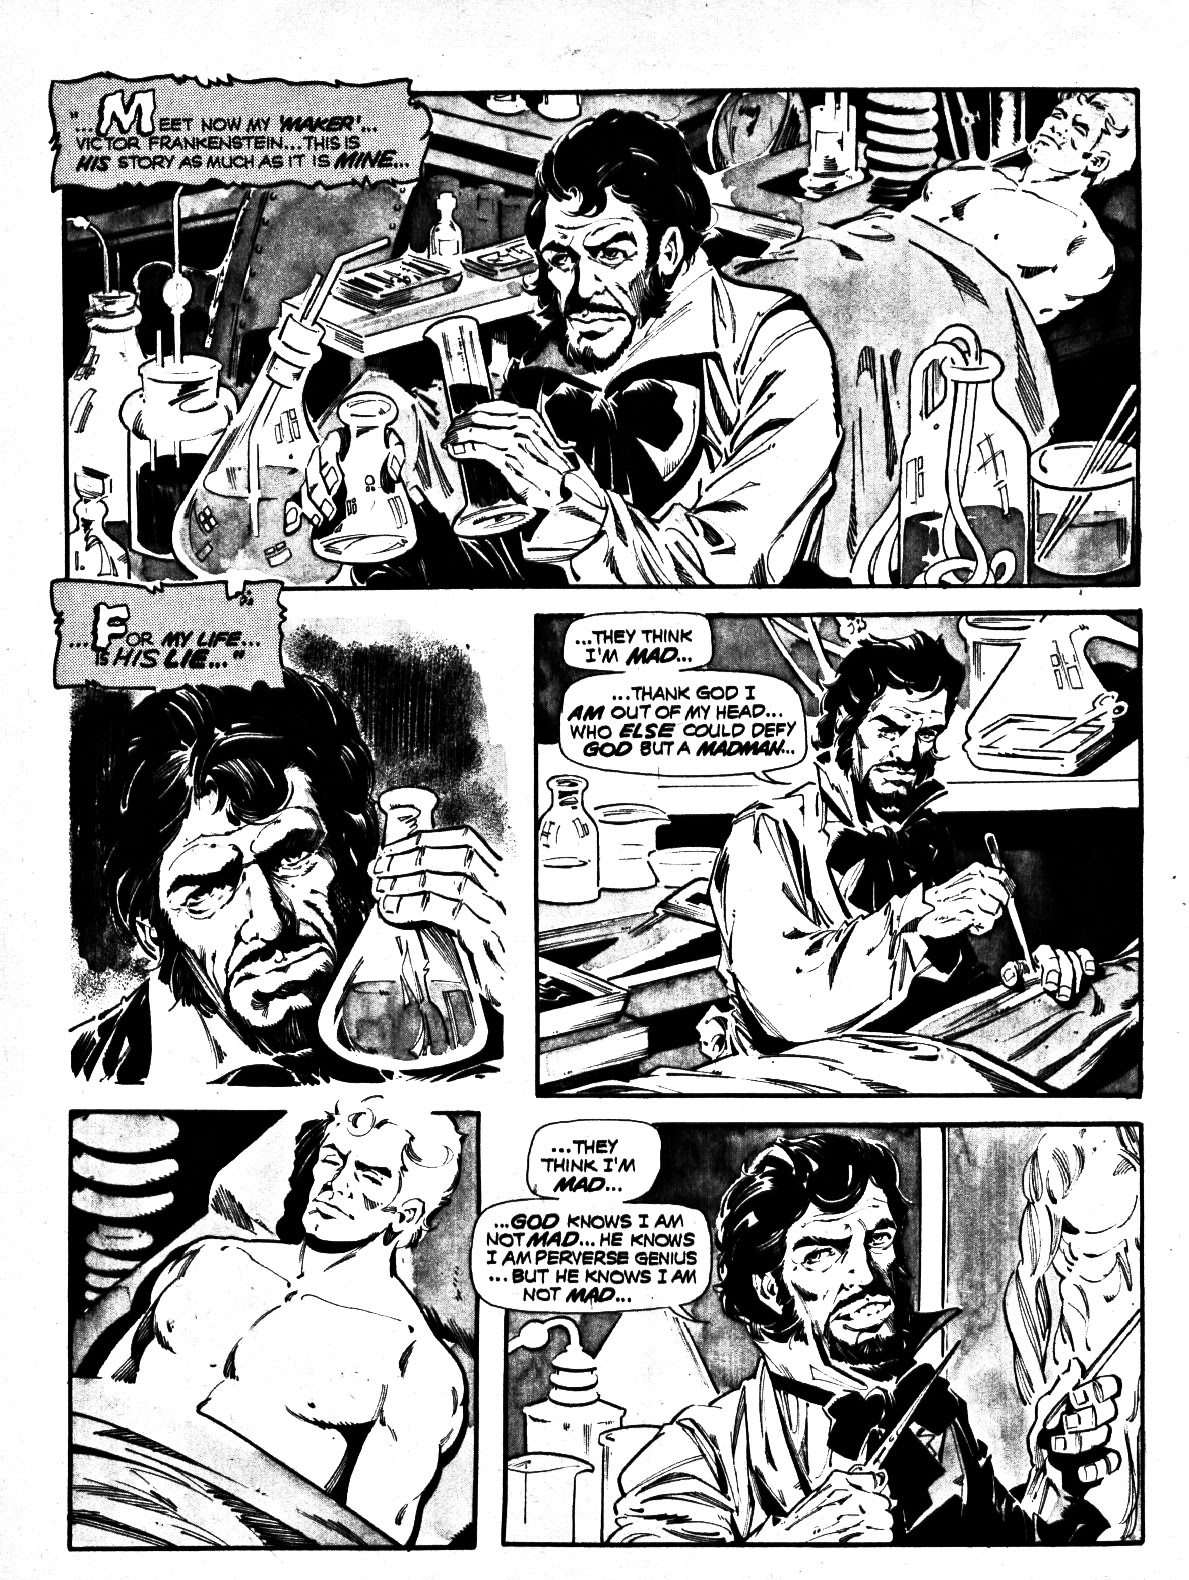 Scream (1973) issue 7 - Page 37